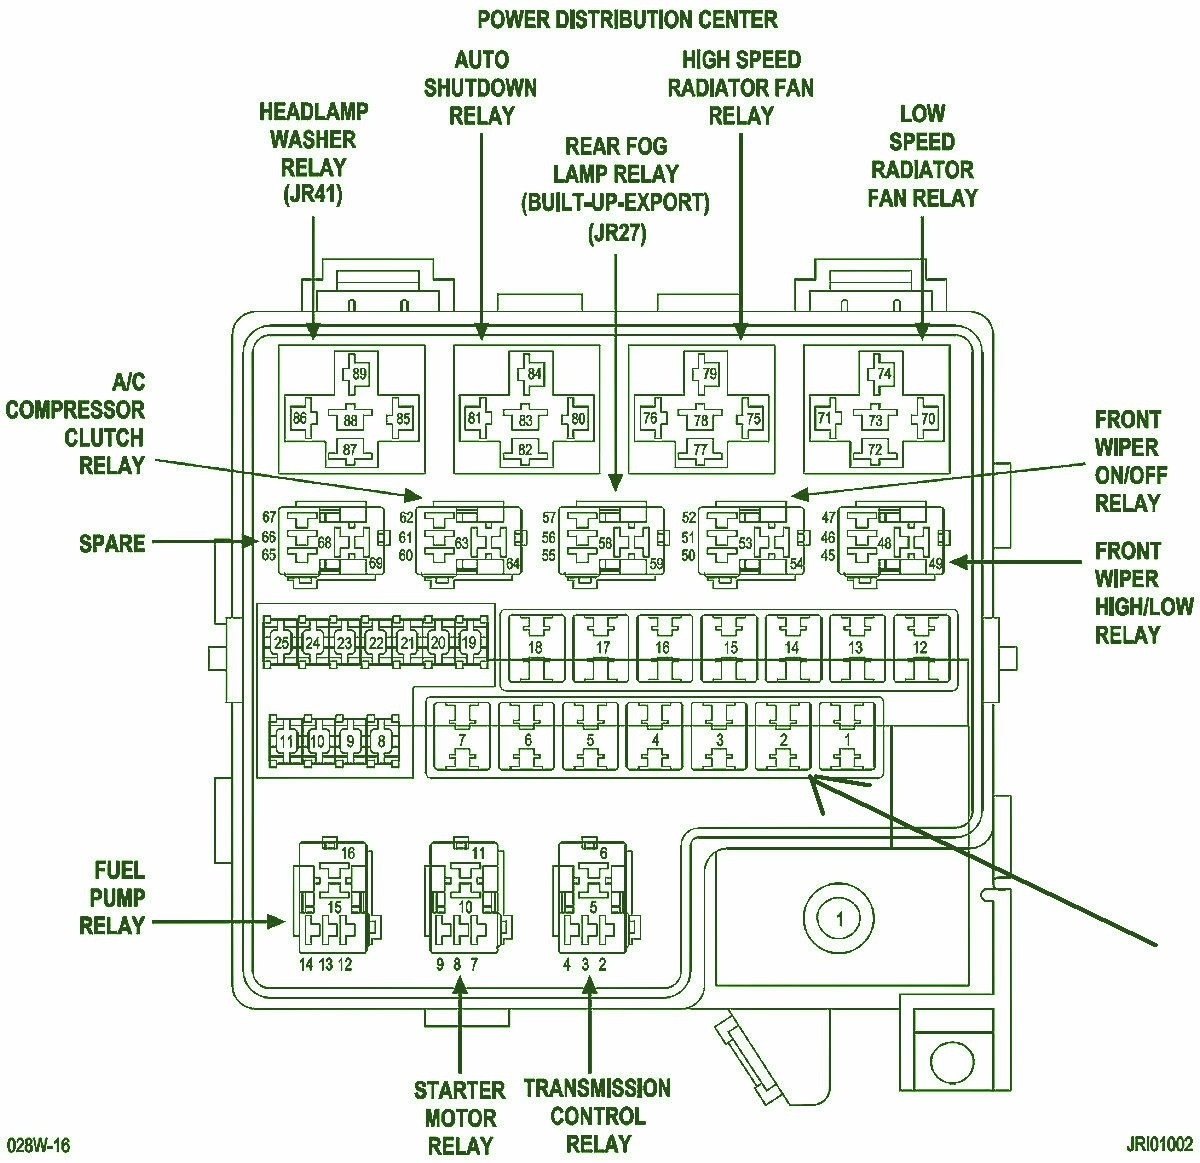 pic 7639269864944911098 1600x1200 2006 sebring fuse box diagram 2006 sebring horn fuse \u2022 free wiring 2002 chrysler sebring fuse box diagram at reclaimingppi.co